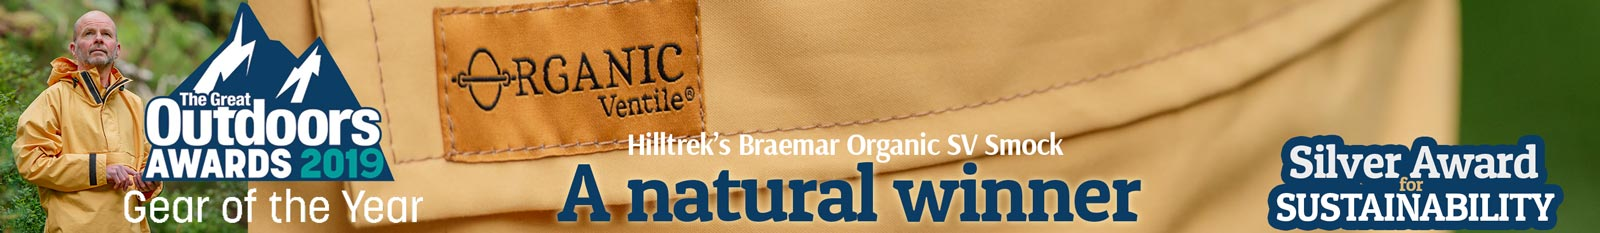 Hilltrek Braemar Organic SV Smock - Silver Award for Sustainability TGO Gear of the Year 2019